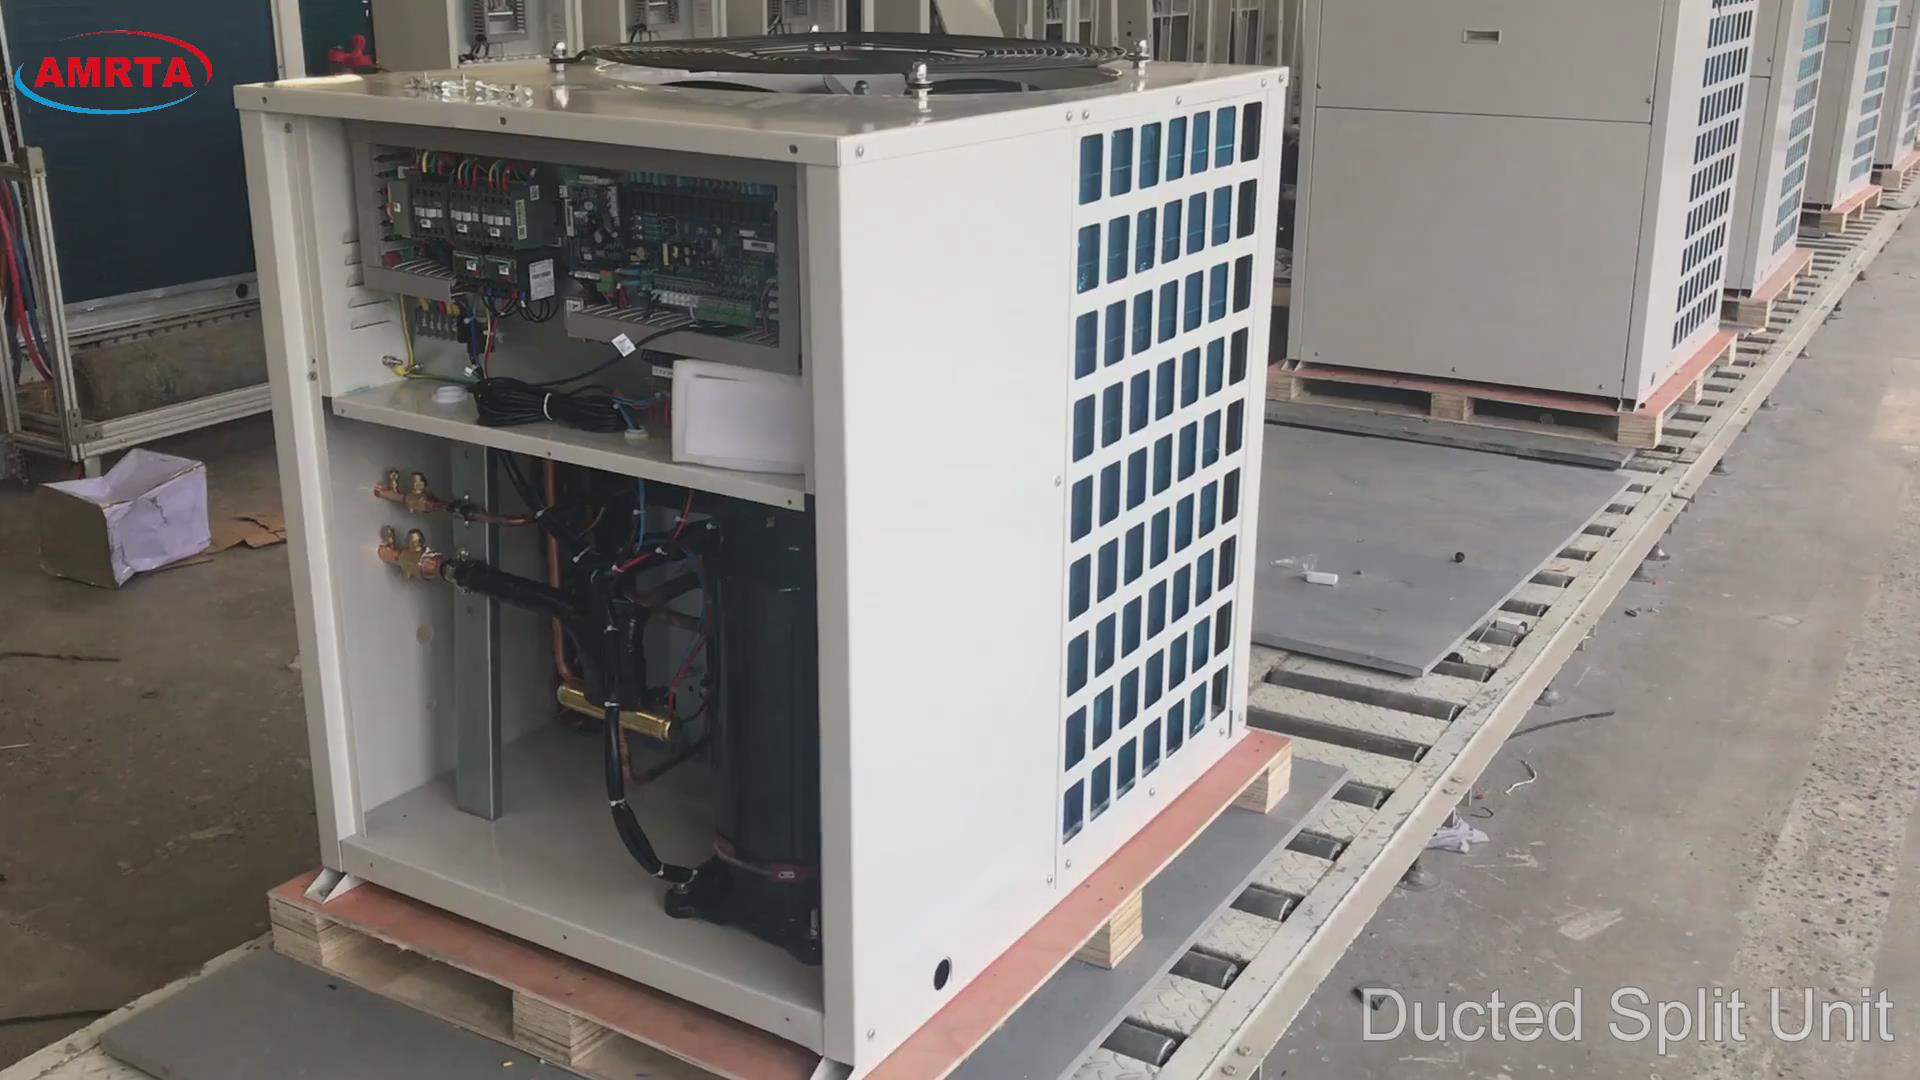 Amrta Ducted Split Air Conditioner for Hotel